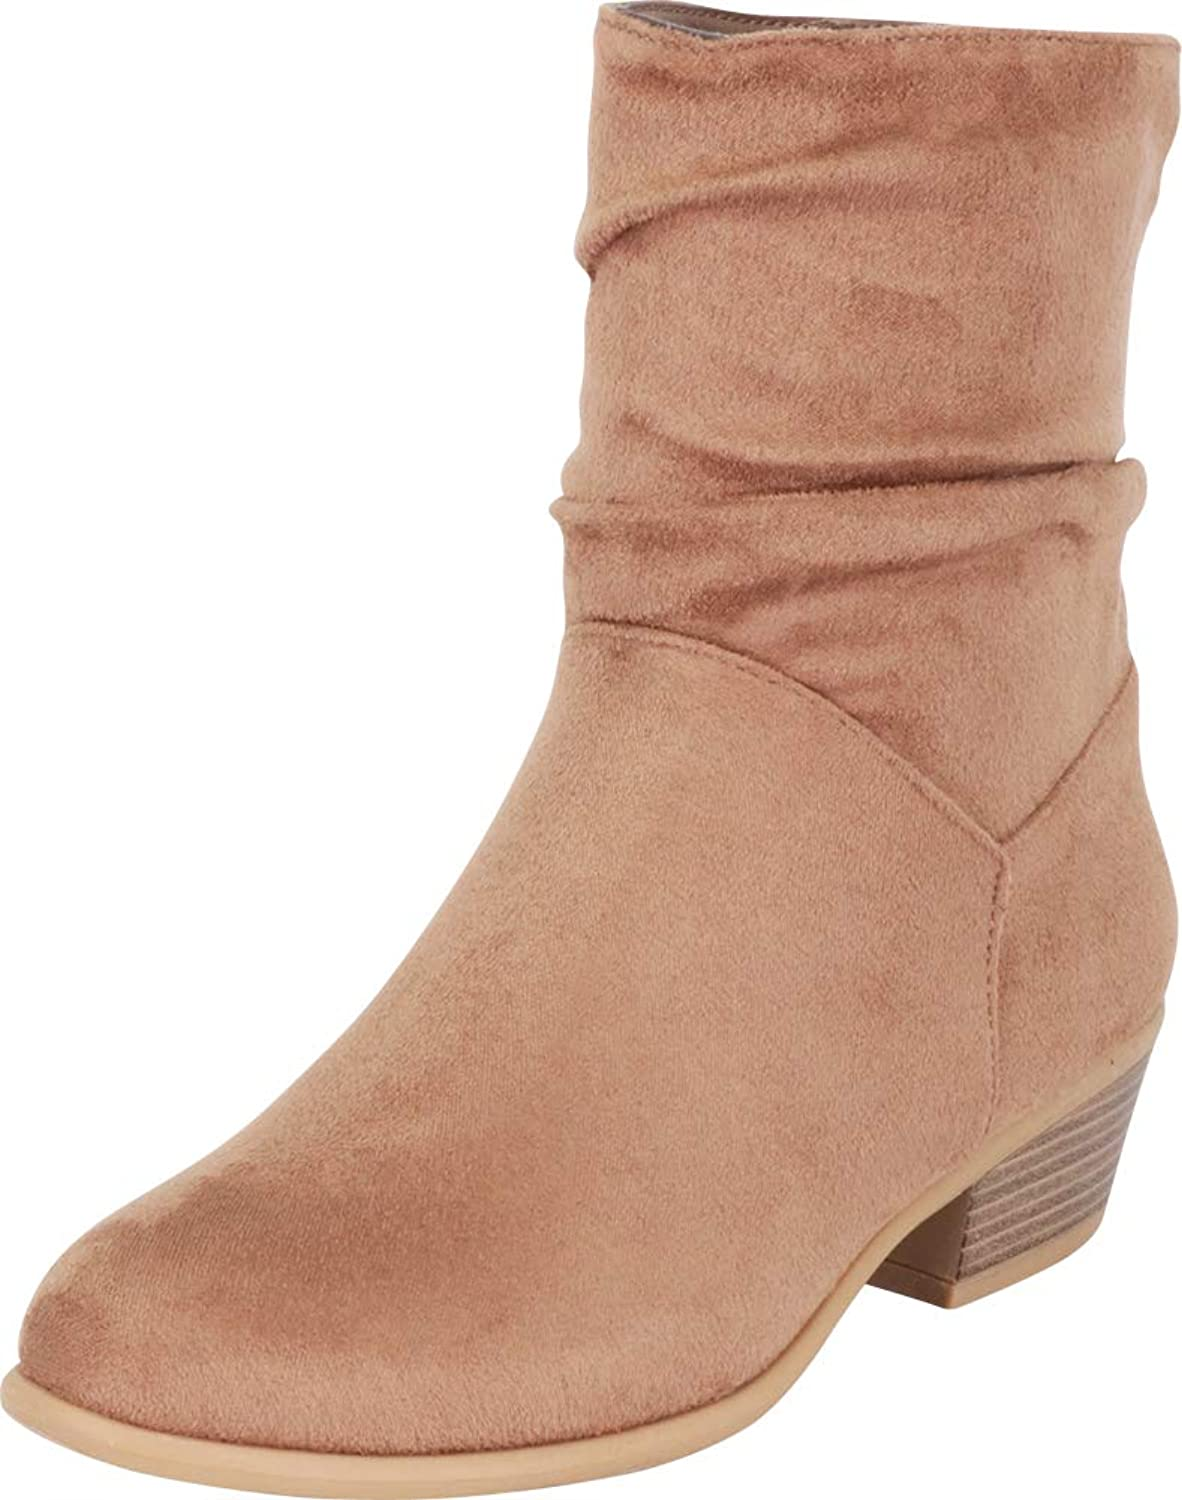 Cambridge Select Women's Ruched Slouch Chunky Stacked Heel Ankle Bootie